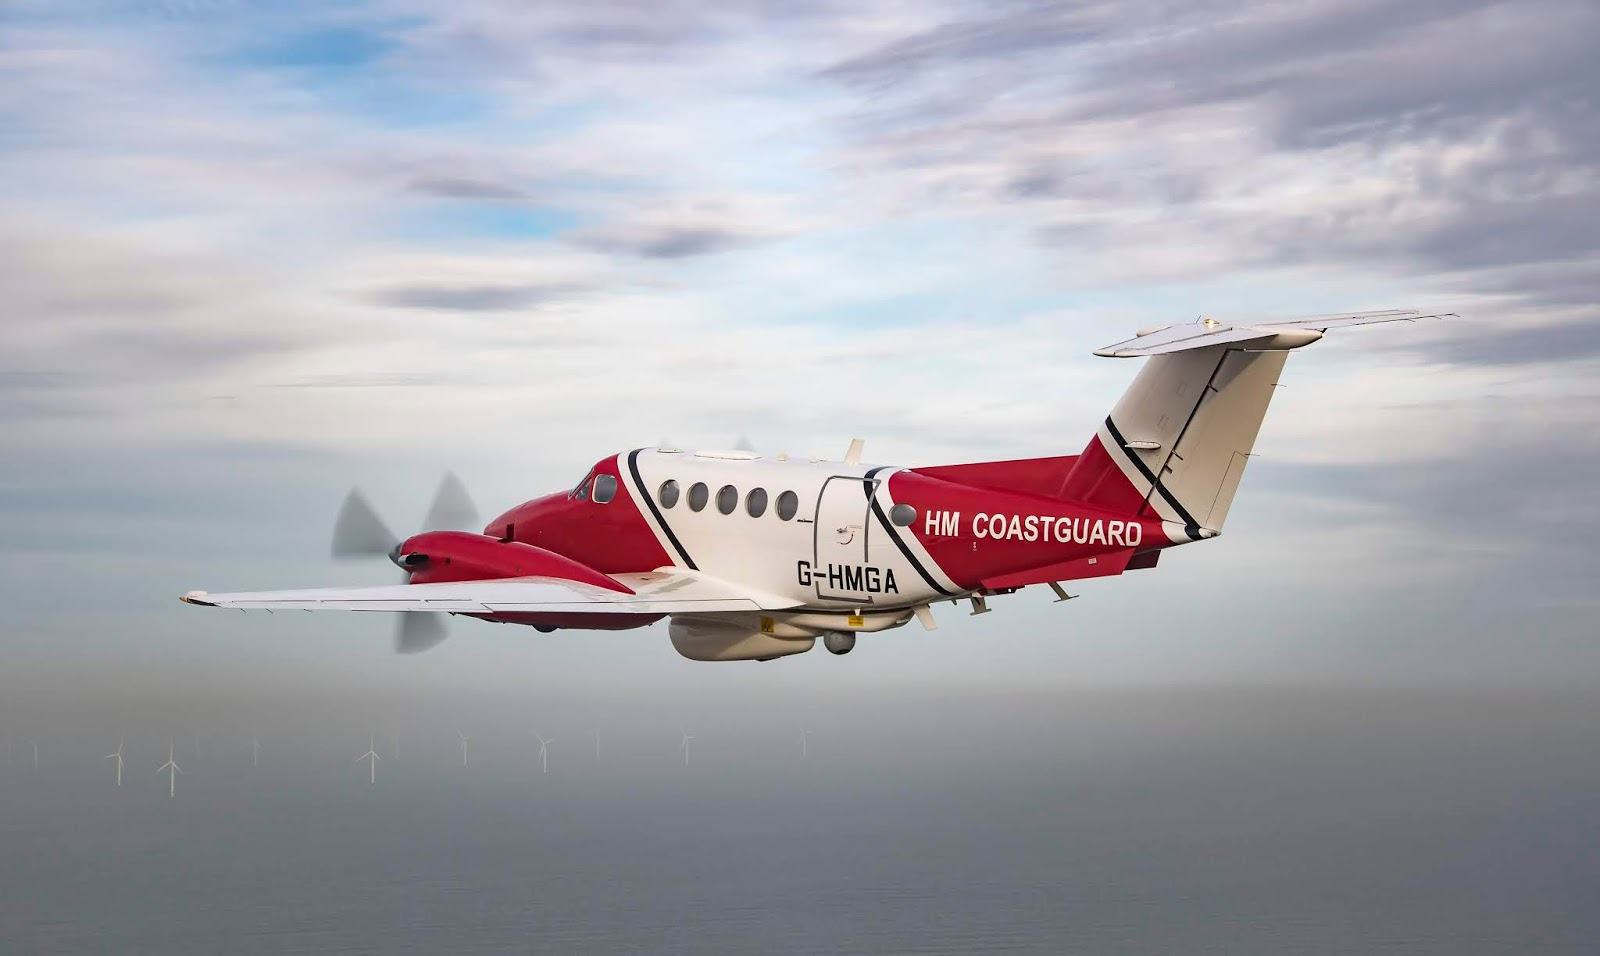 Coastguard King Air